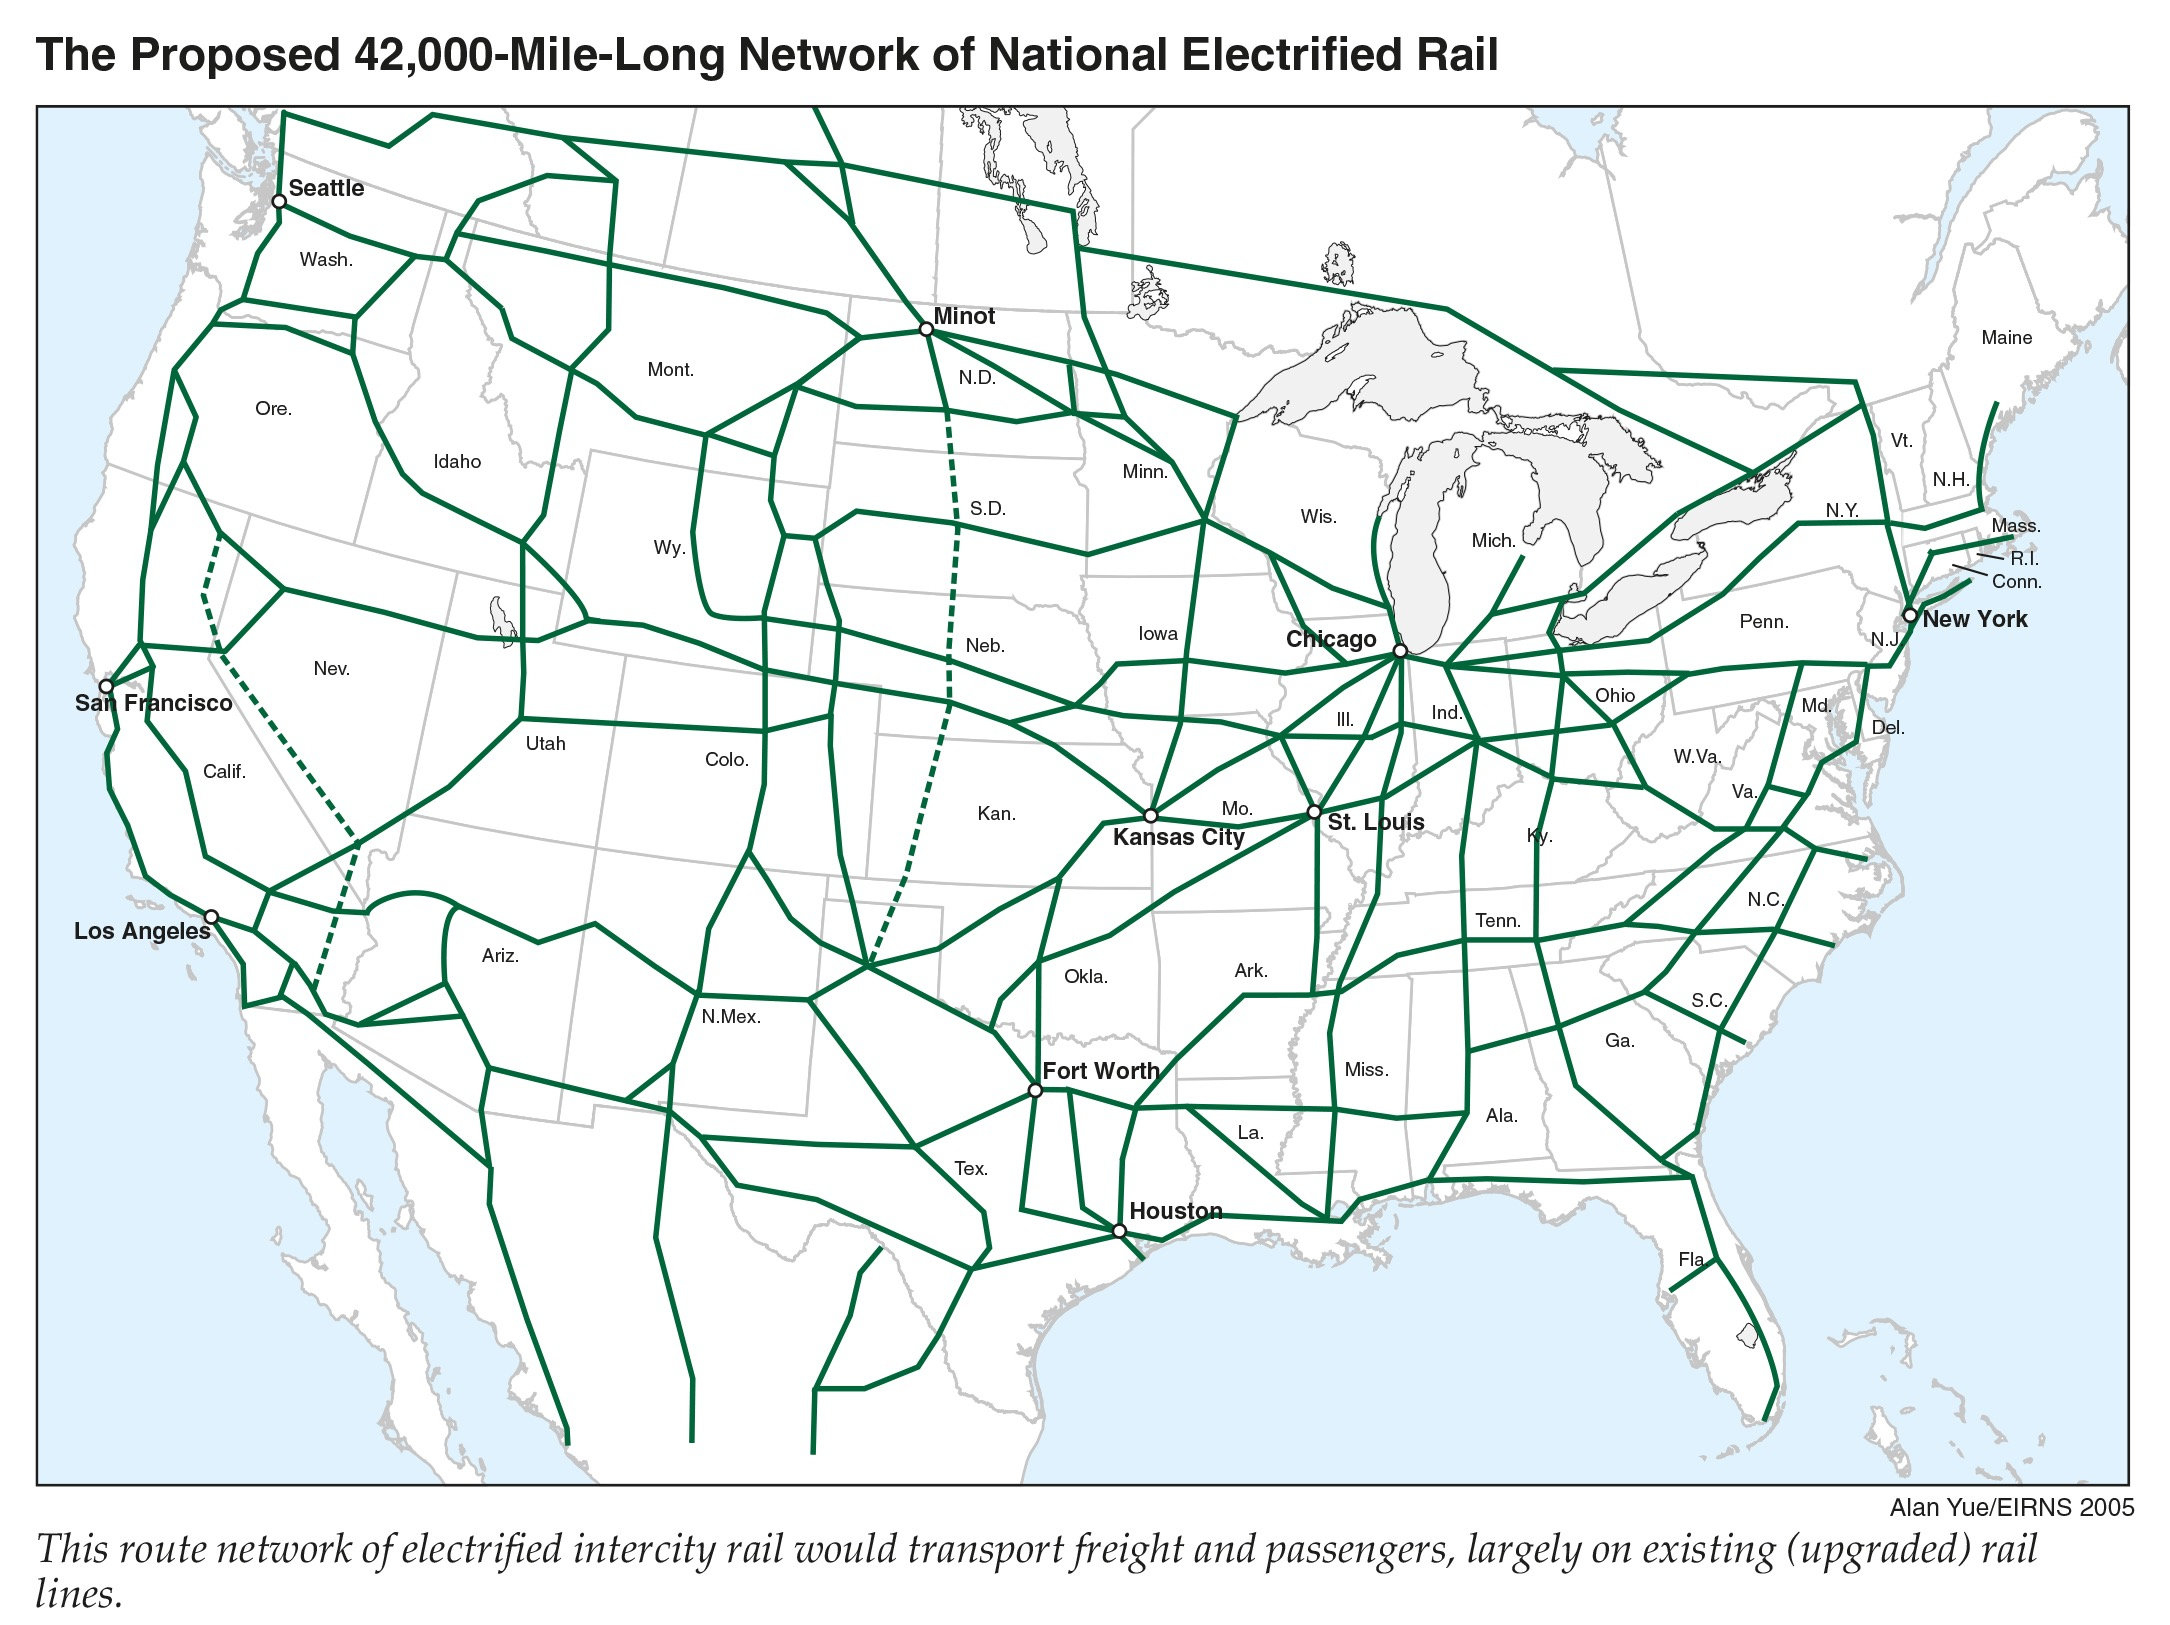 Proposed high-speed rail for US lower 48 states.